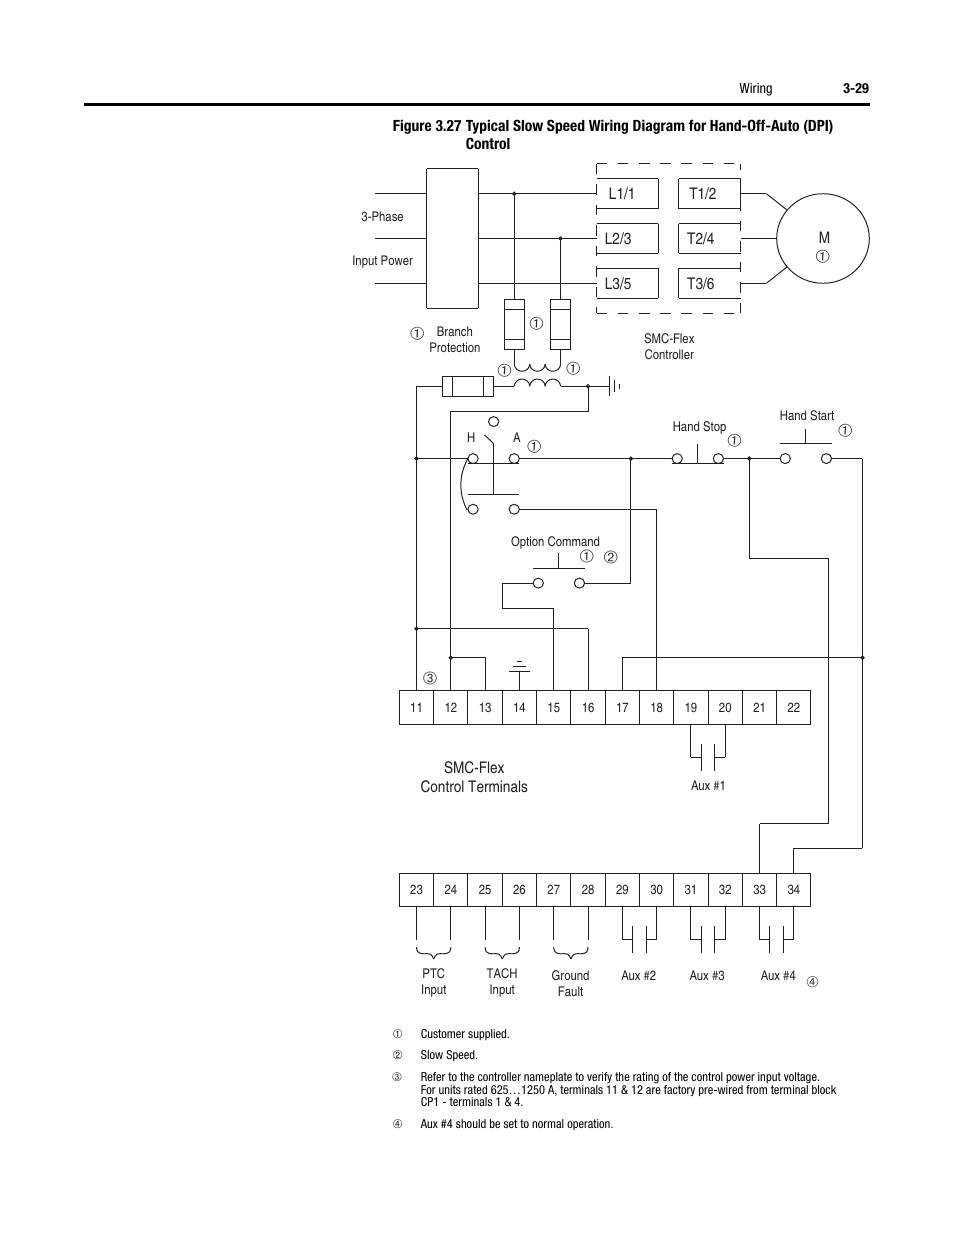 Torchmate Wiring Diagram likewise Torchmate Wiring Diagram moreover 23 further Rigid Radiance Wiring Diagram besides Hk Vp 40 In Pink Wiring Diagrams. on torchmate wiring diagram